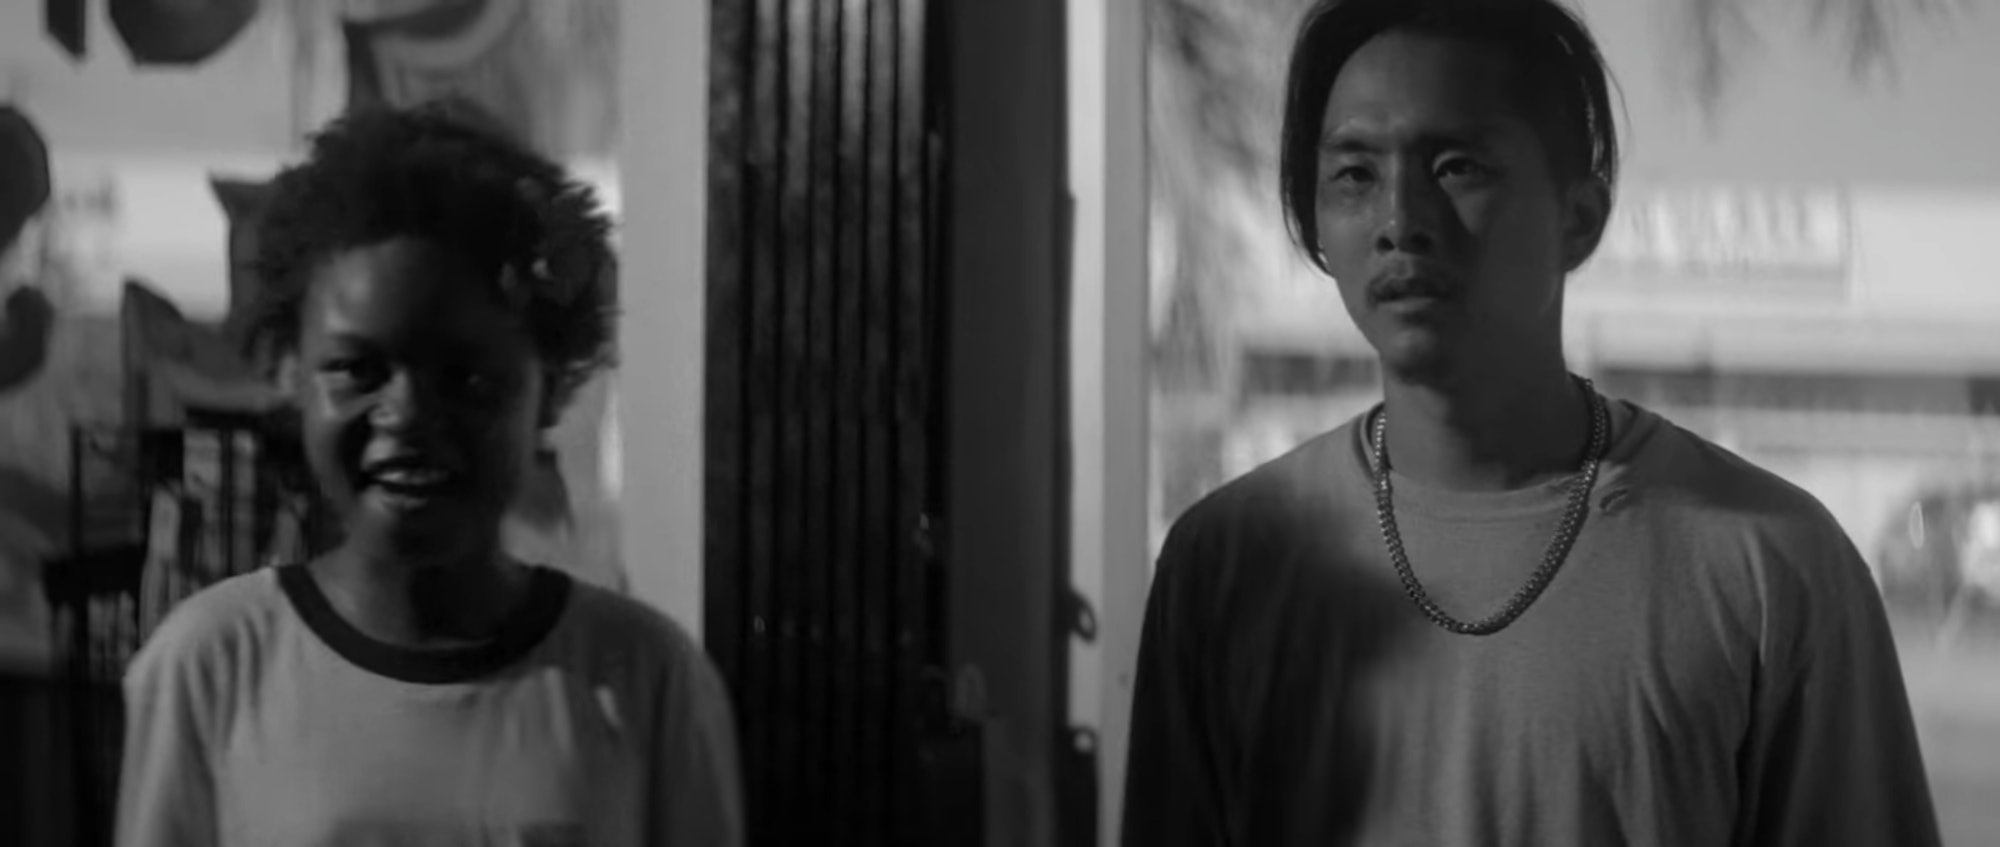 The indie film Gook is set during the Los Angeles riots. It's also one of the few films that unpacks the historical relationship between Korean Americans and African Americans in South Central.